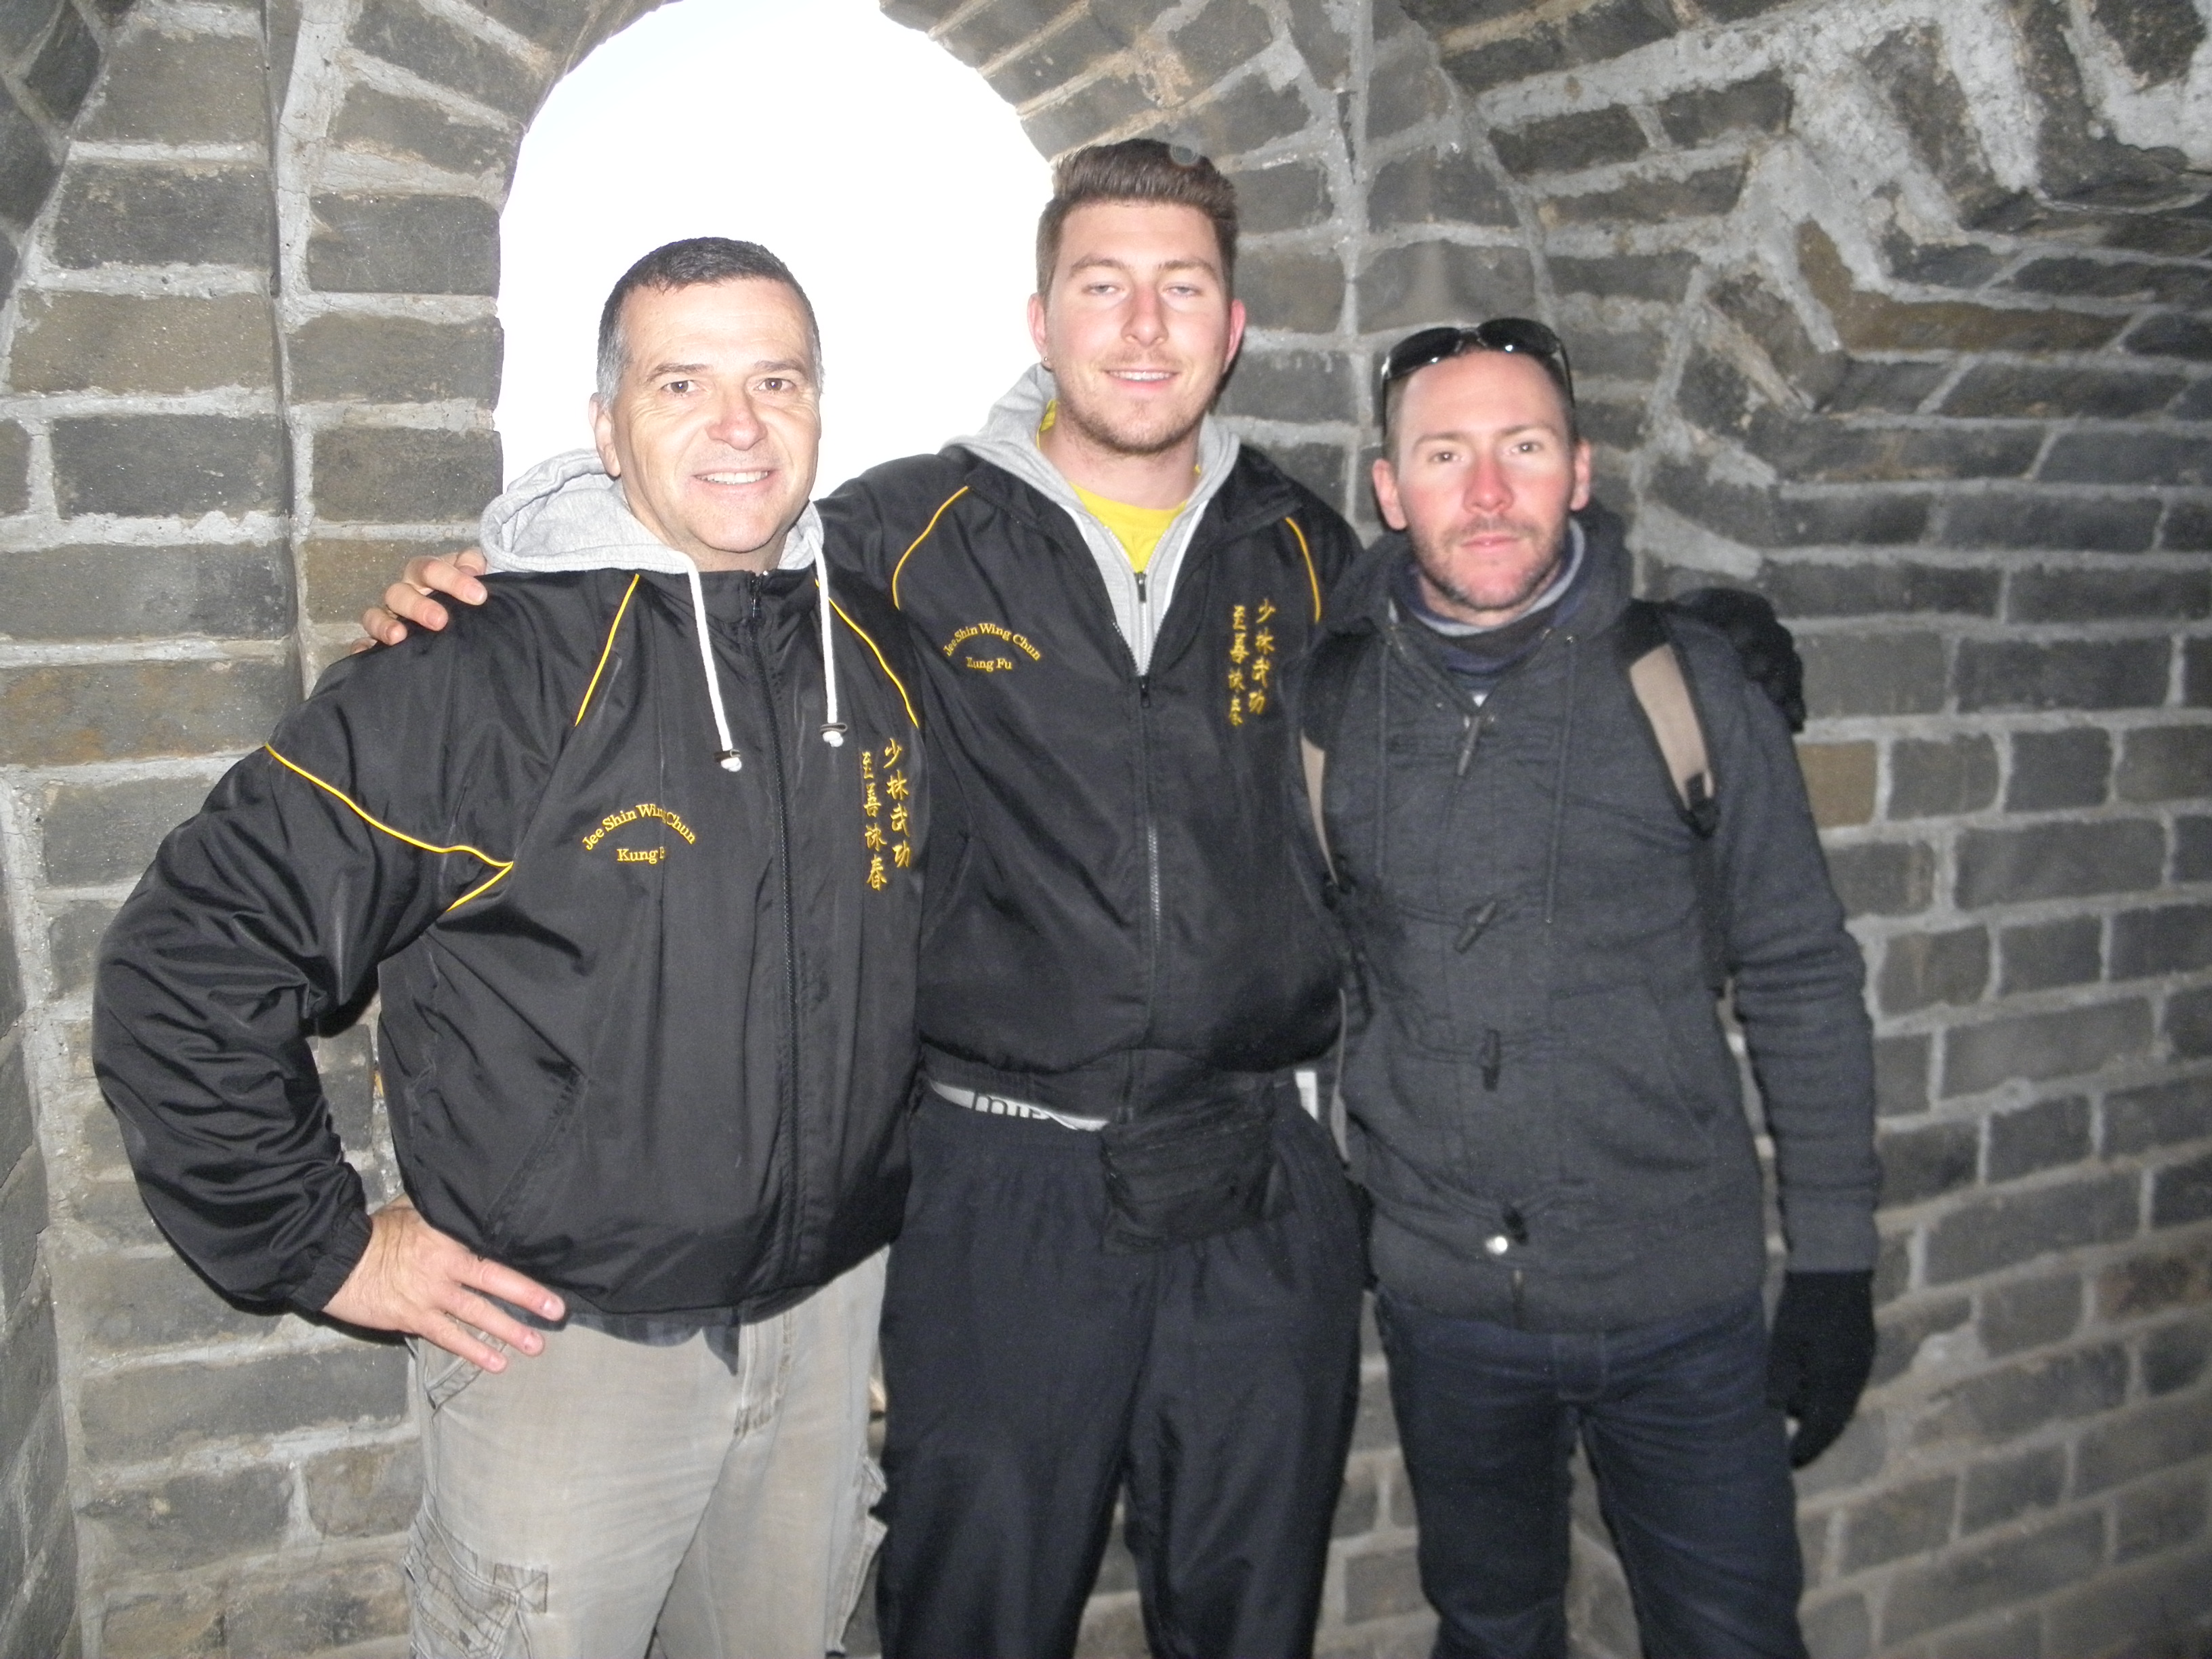 Bobby, Matt and Paul on the Great Wall of China